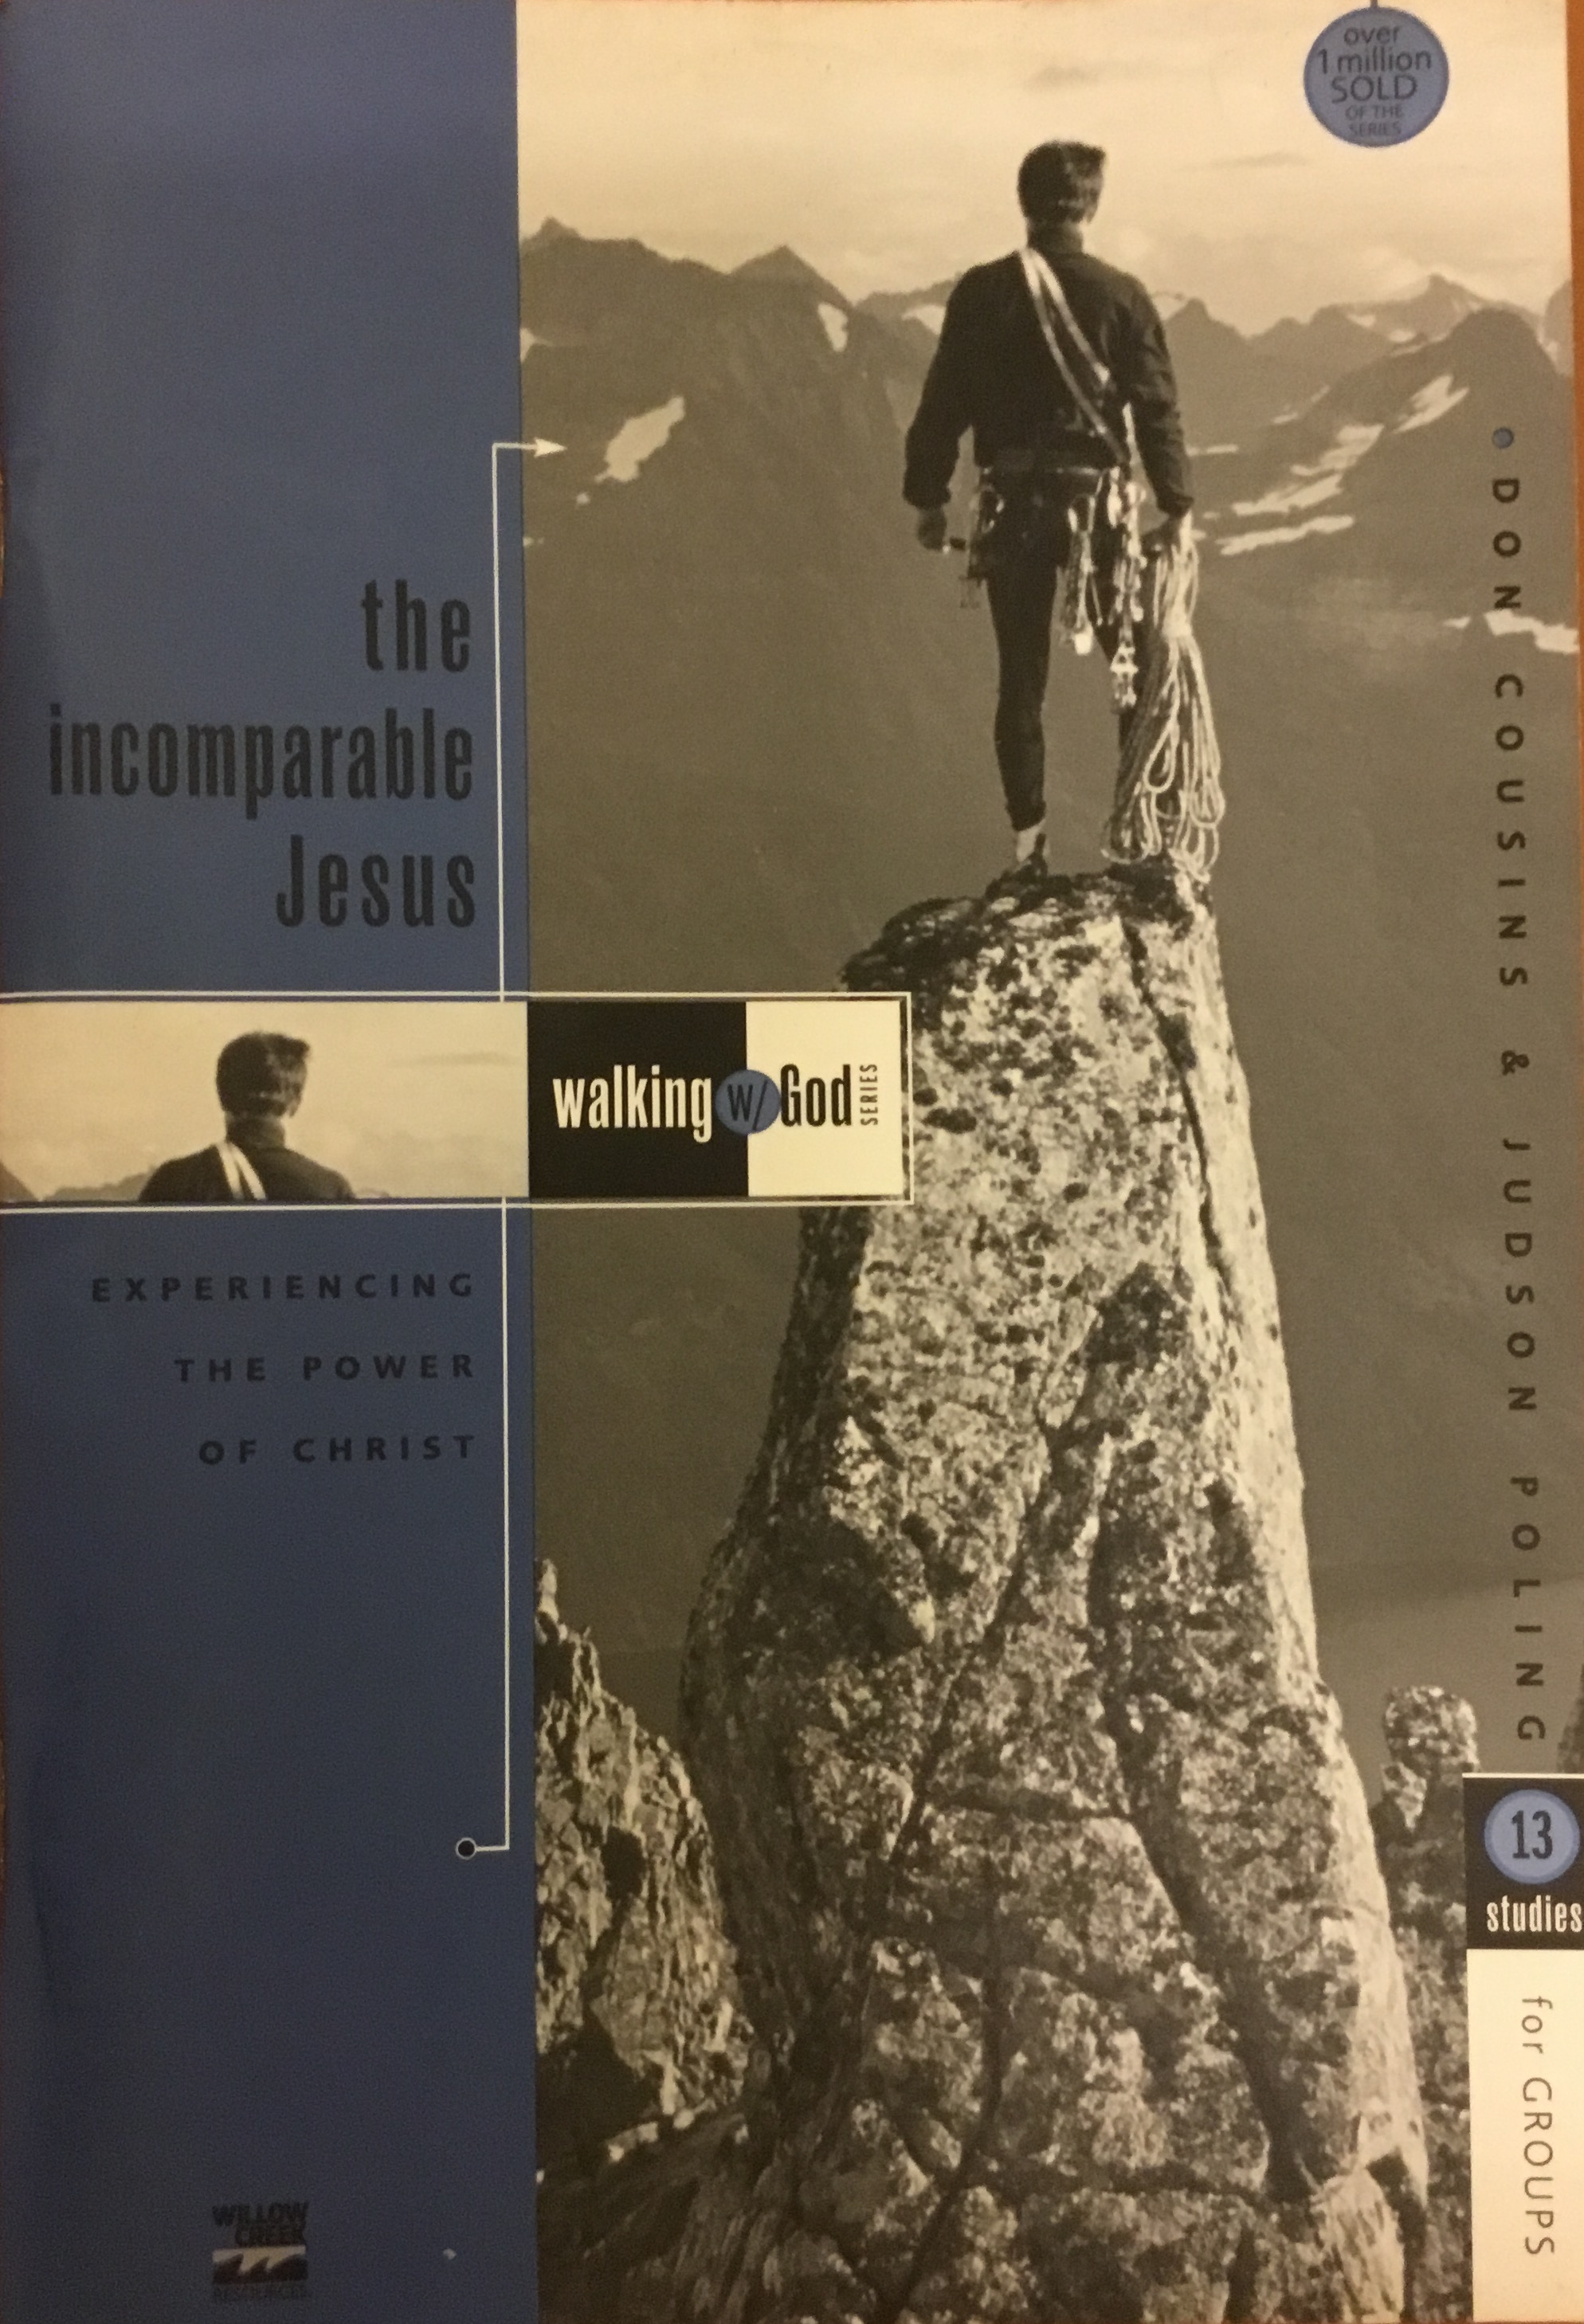 The incomparable Jesus: experiencing the power of Christ